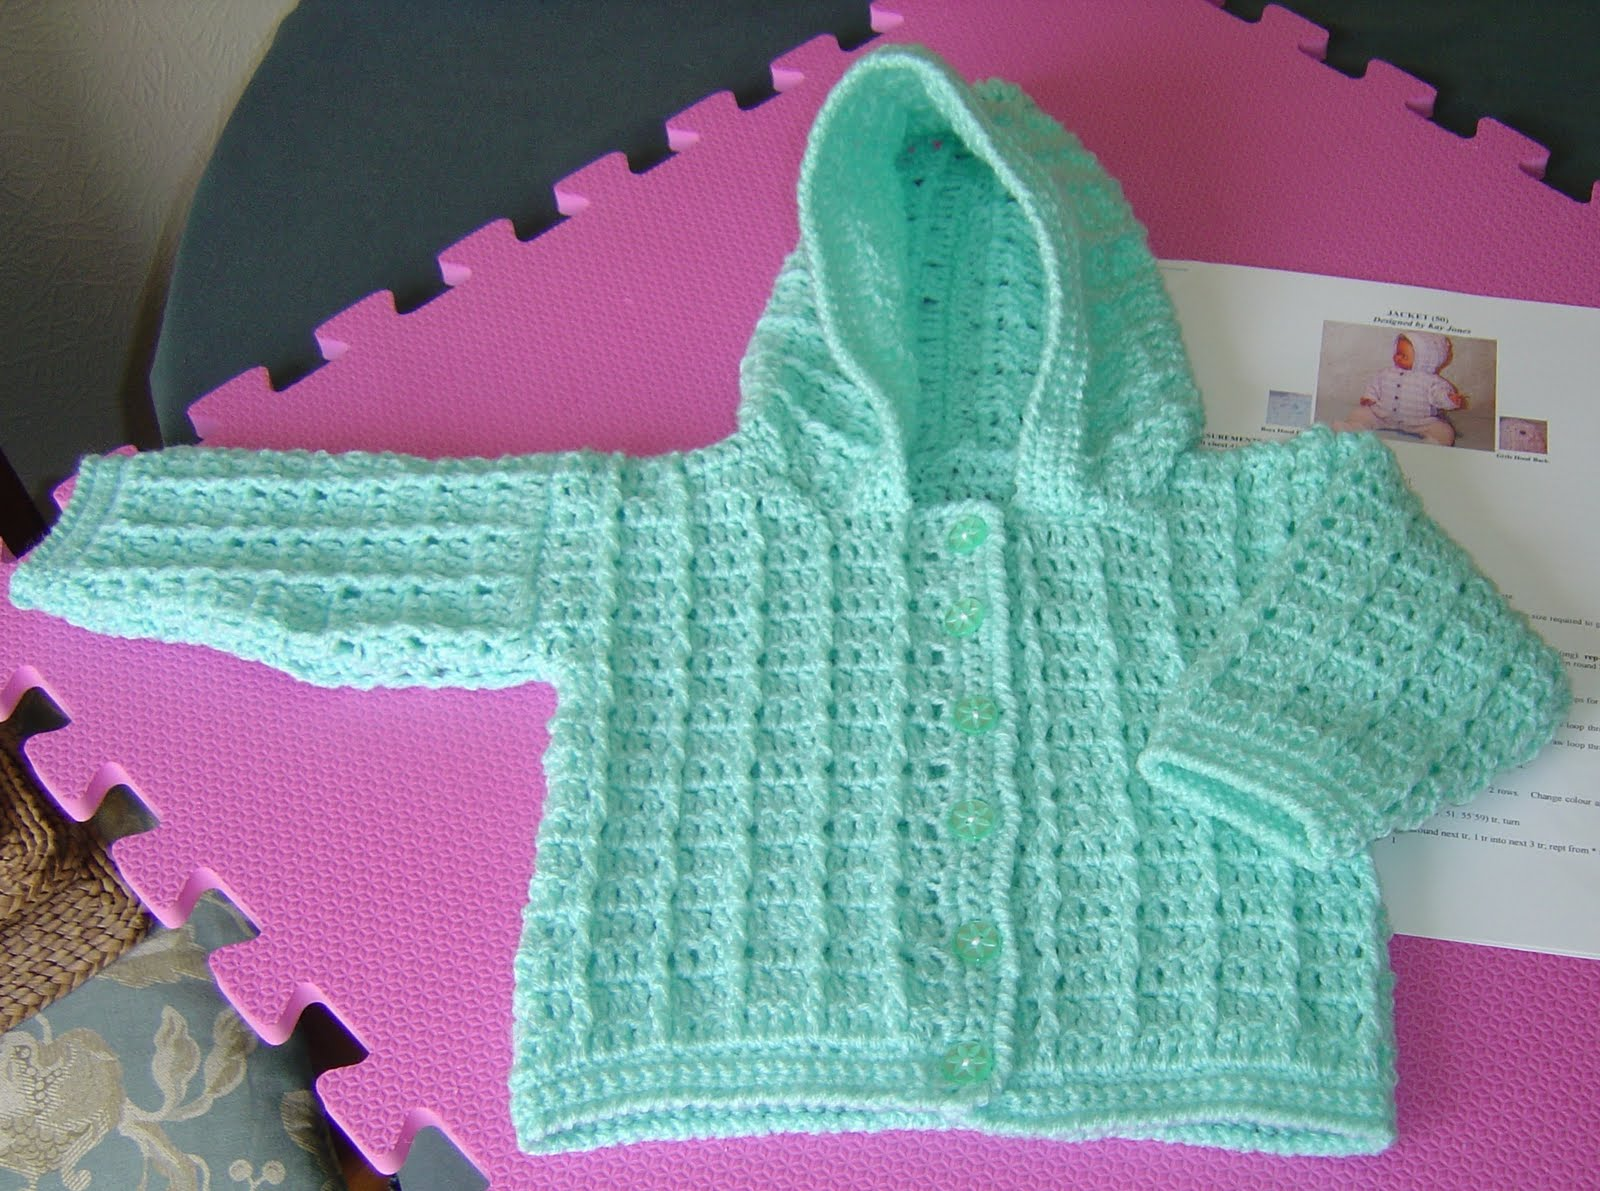 Crochet Baby Jacket Pattern : Crochet Baby Jacket Pattern ? Images of Patterns